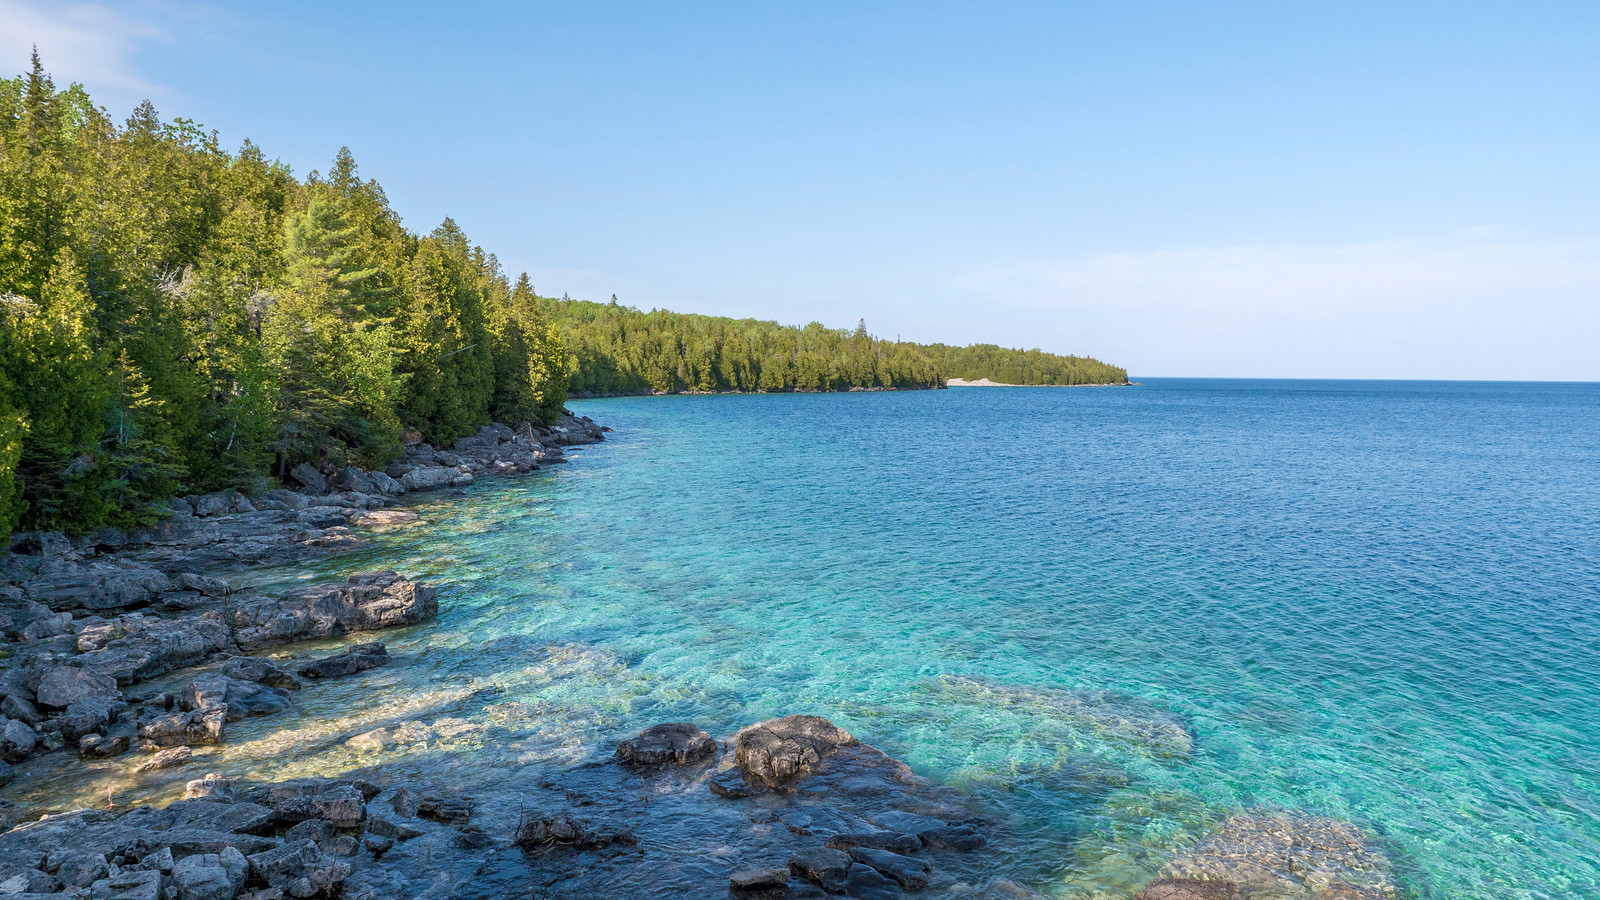 Toronto to Tobermory: An Epic Summer Road Trip